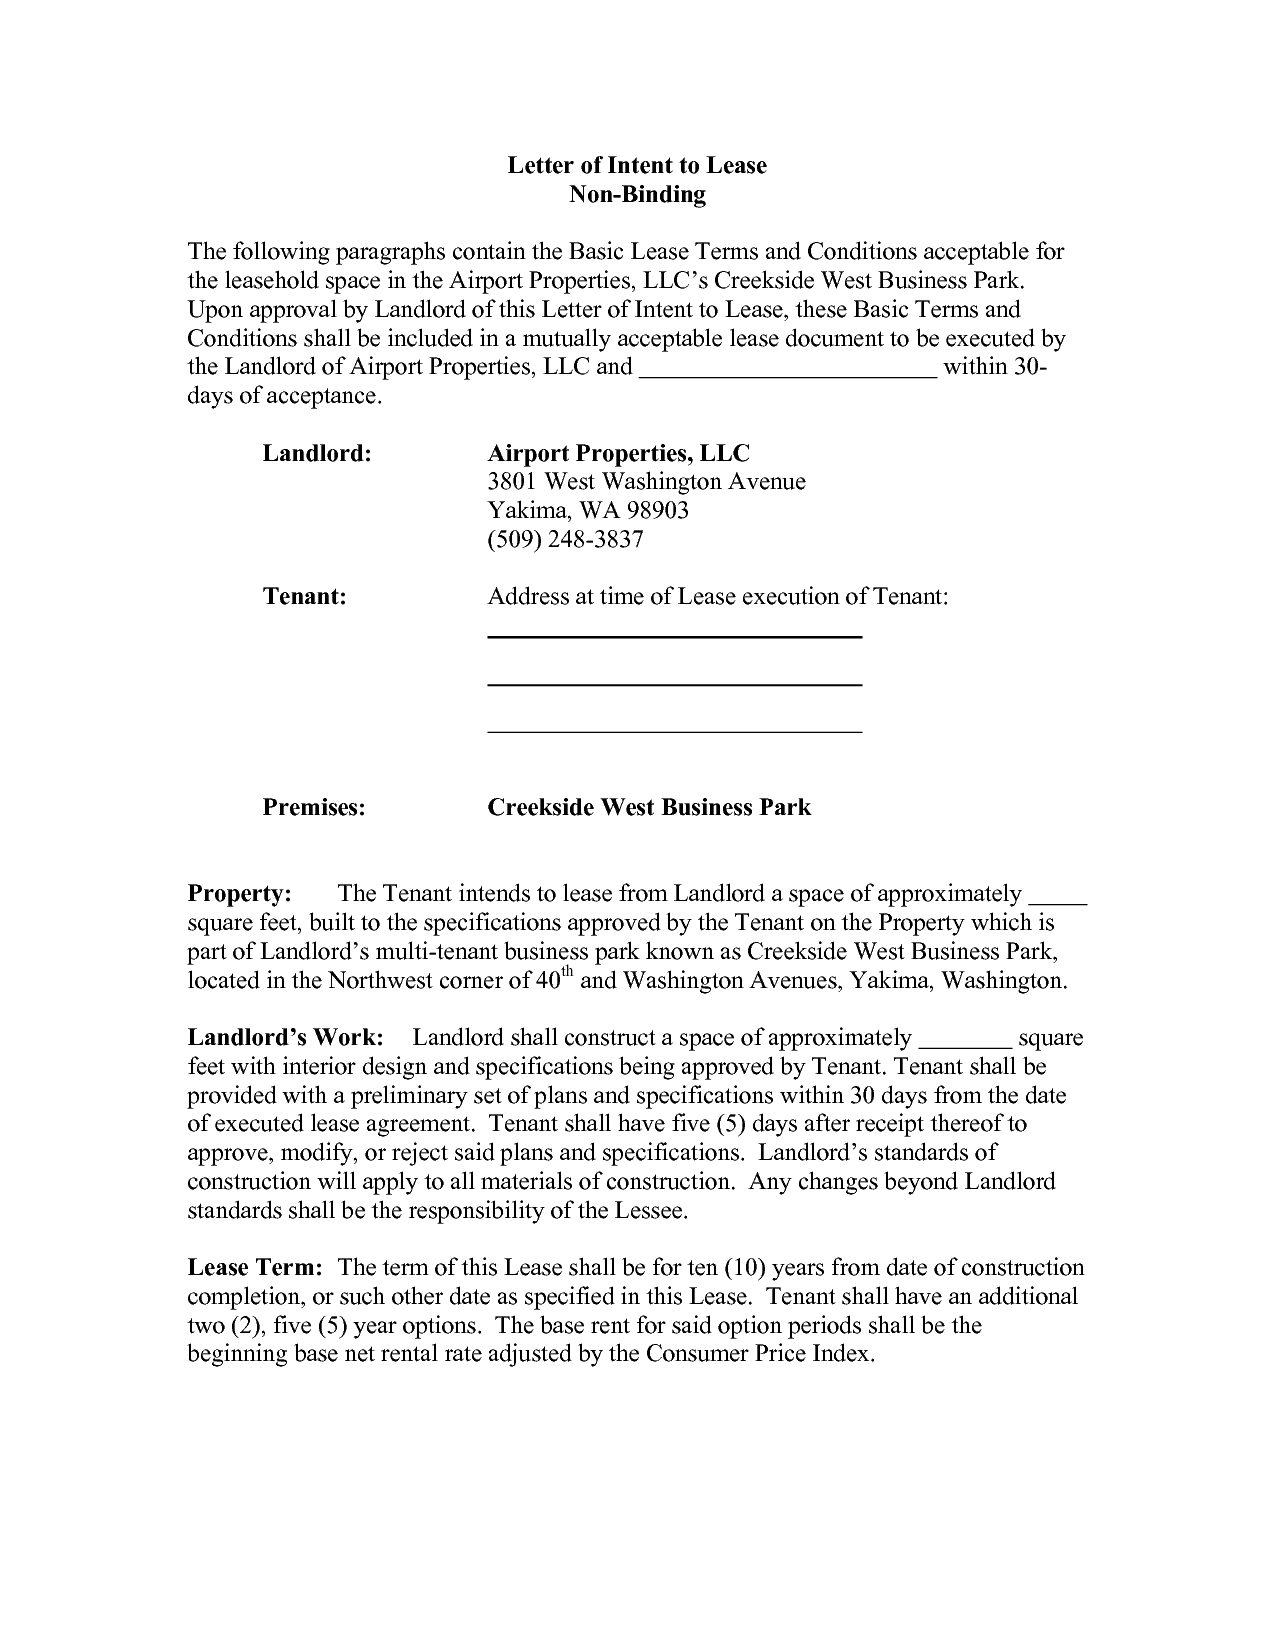 Letter Of Intent to Lease Commercial Space Template - Letter Intent Real  Estate Lease Hd Best